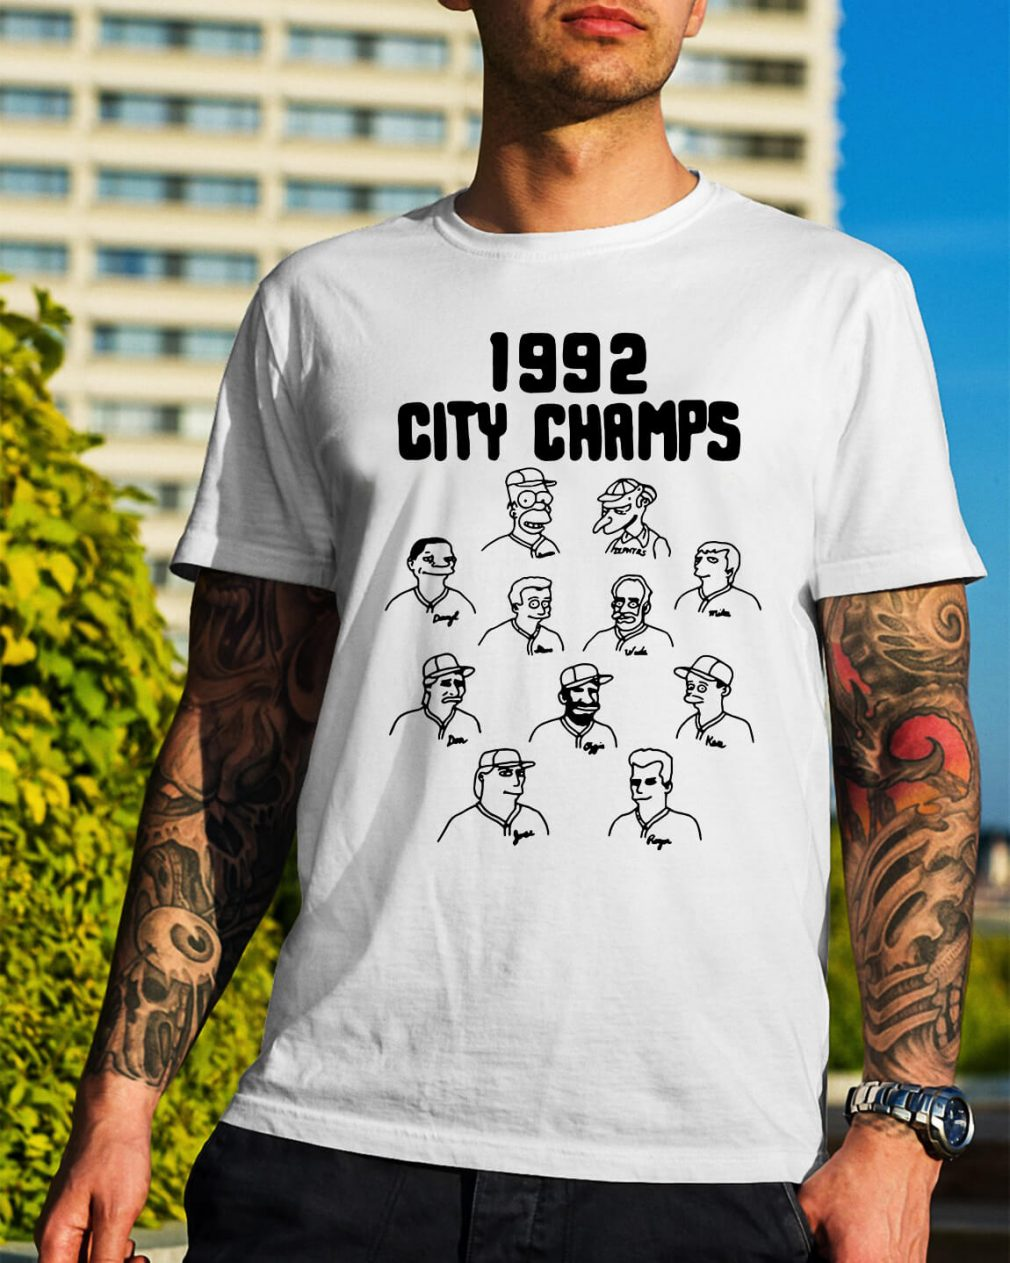 The Simpsons 1992 city champs shirt